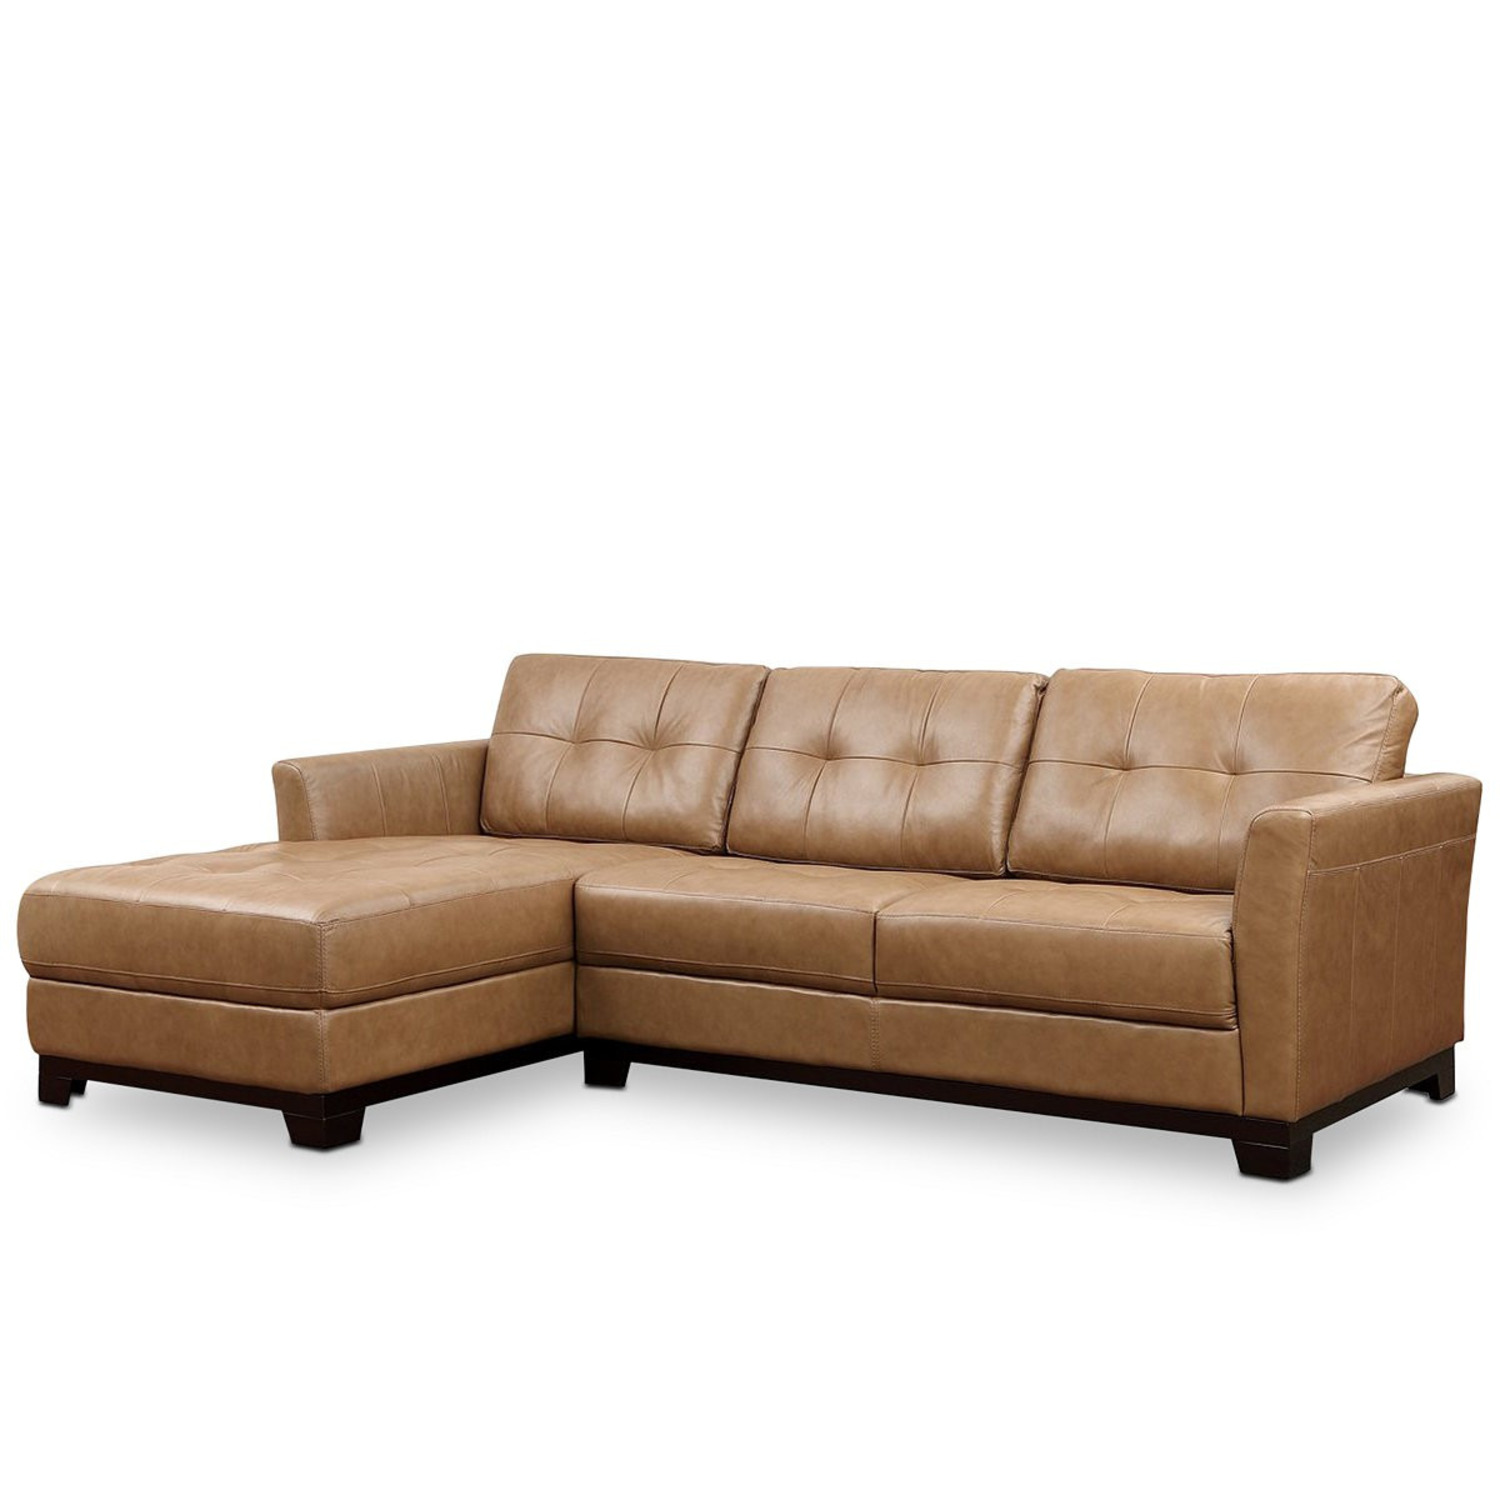 Macy's Martino Leather Chaise Sectional Sofa - image-0